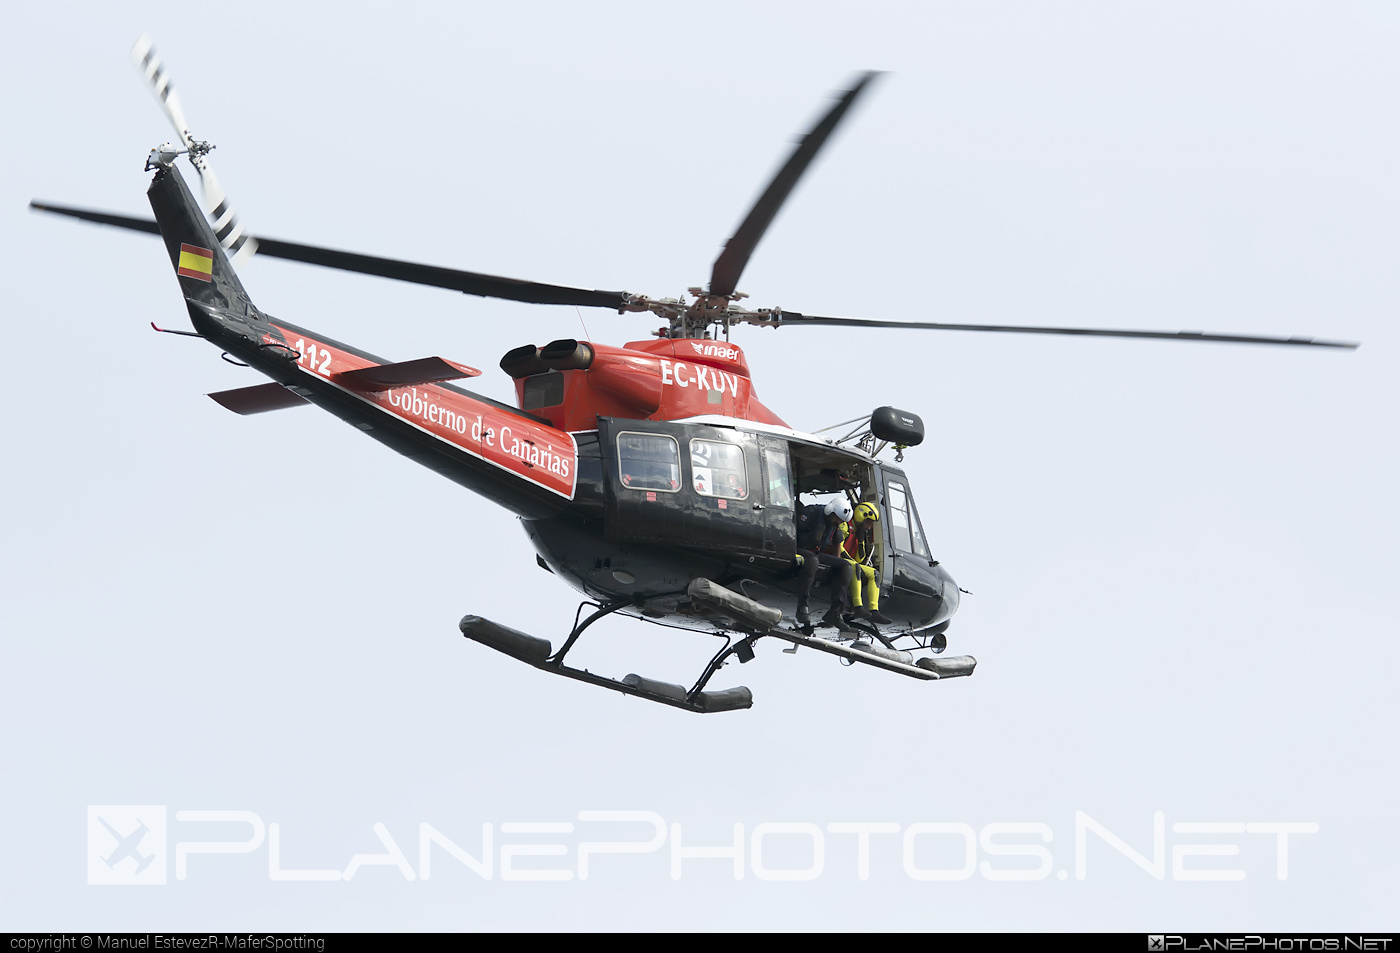 Agusta Bell AB-412 Grifone - EC-KUV operated by Inaer #agustabell